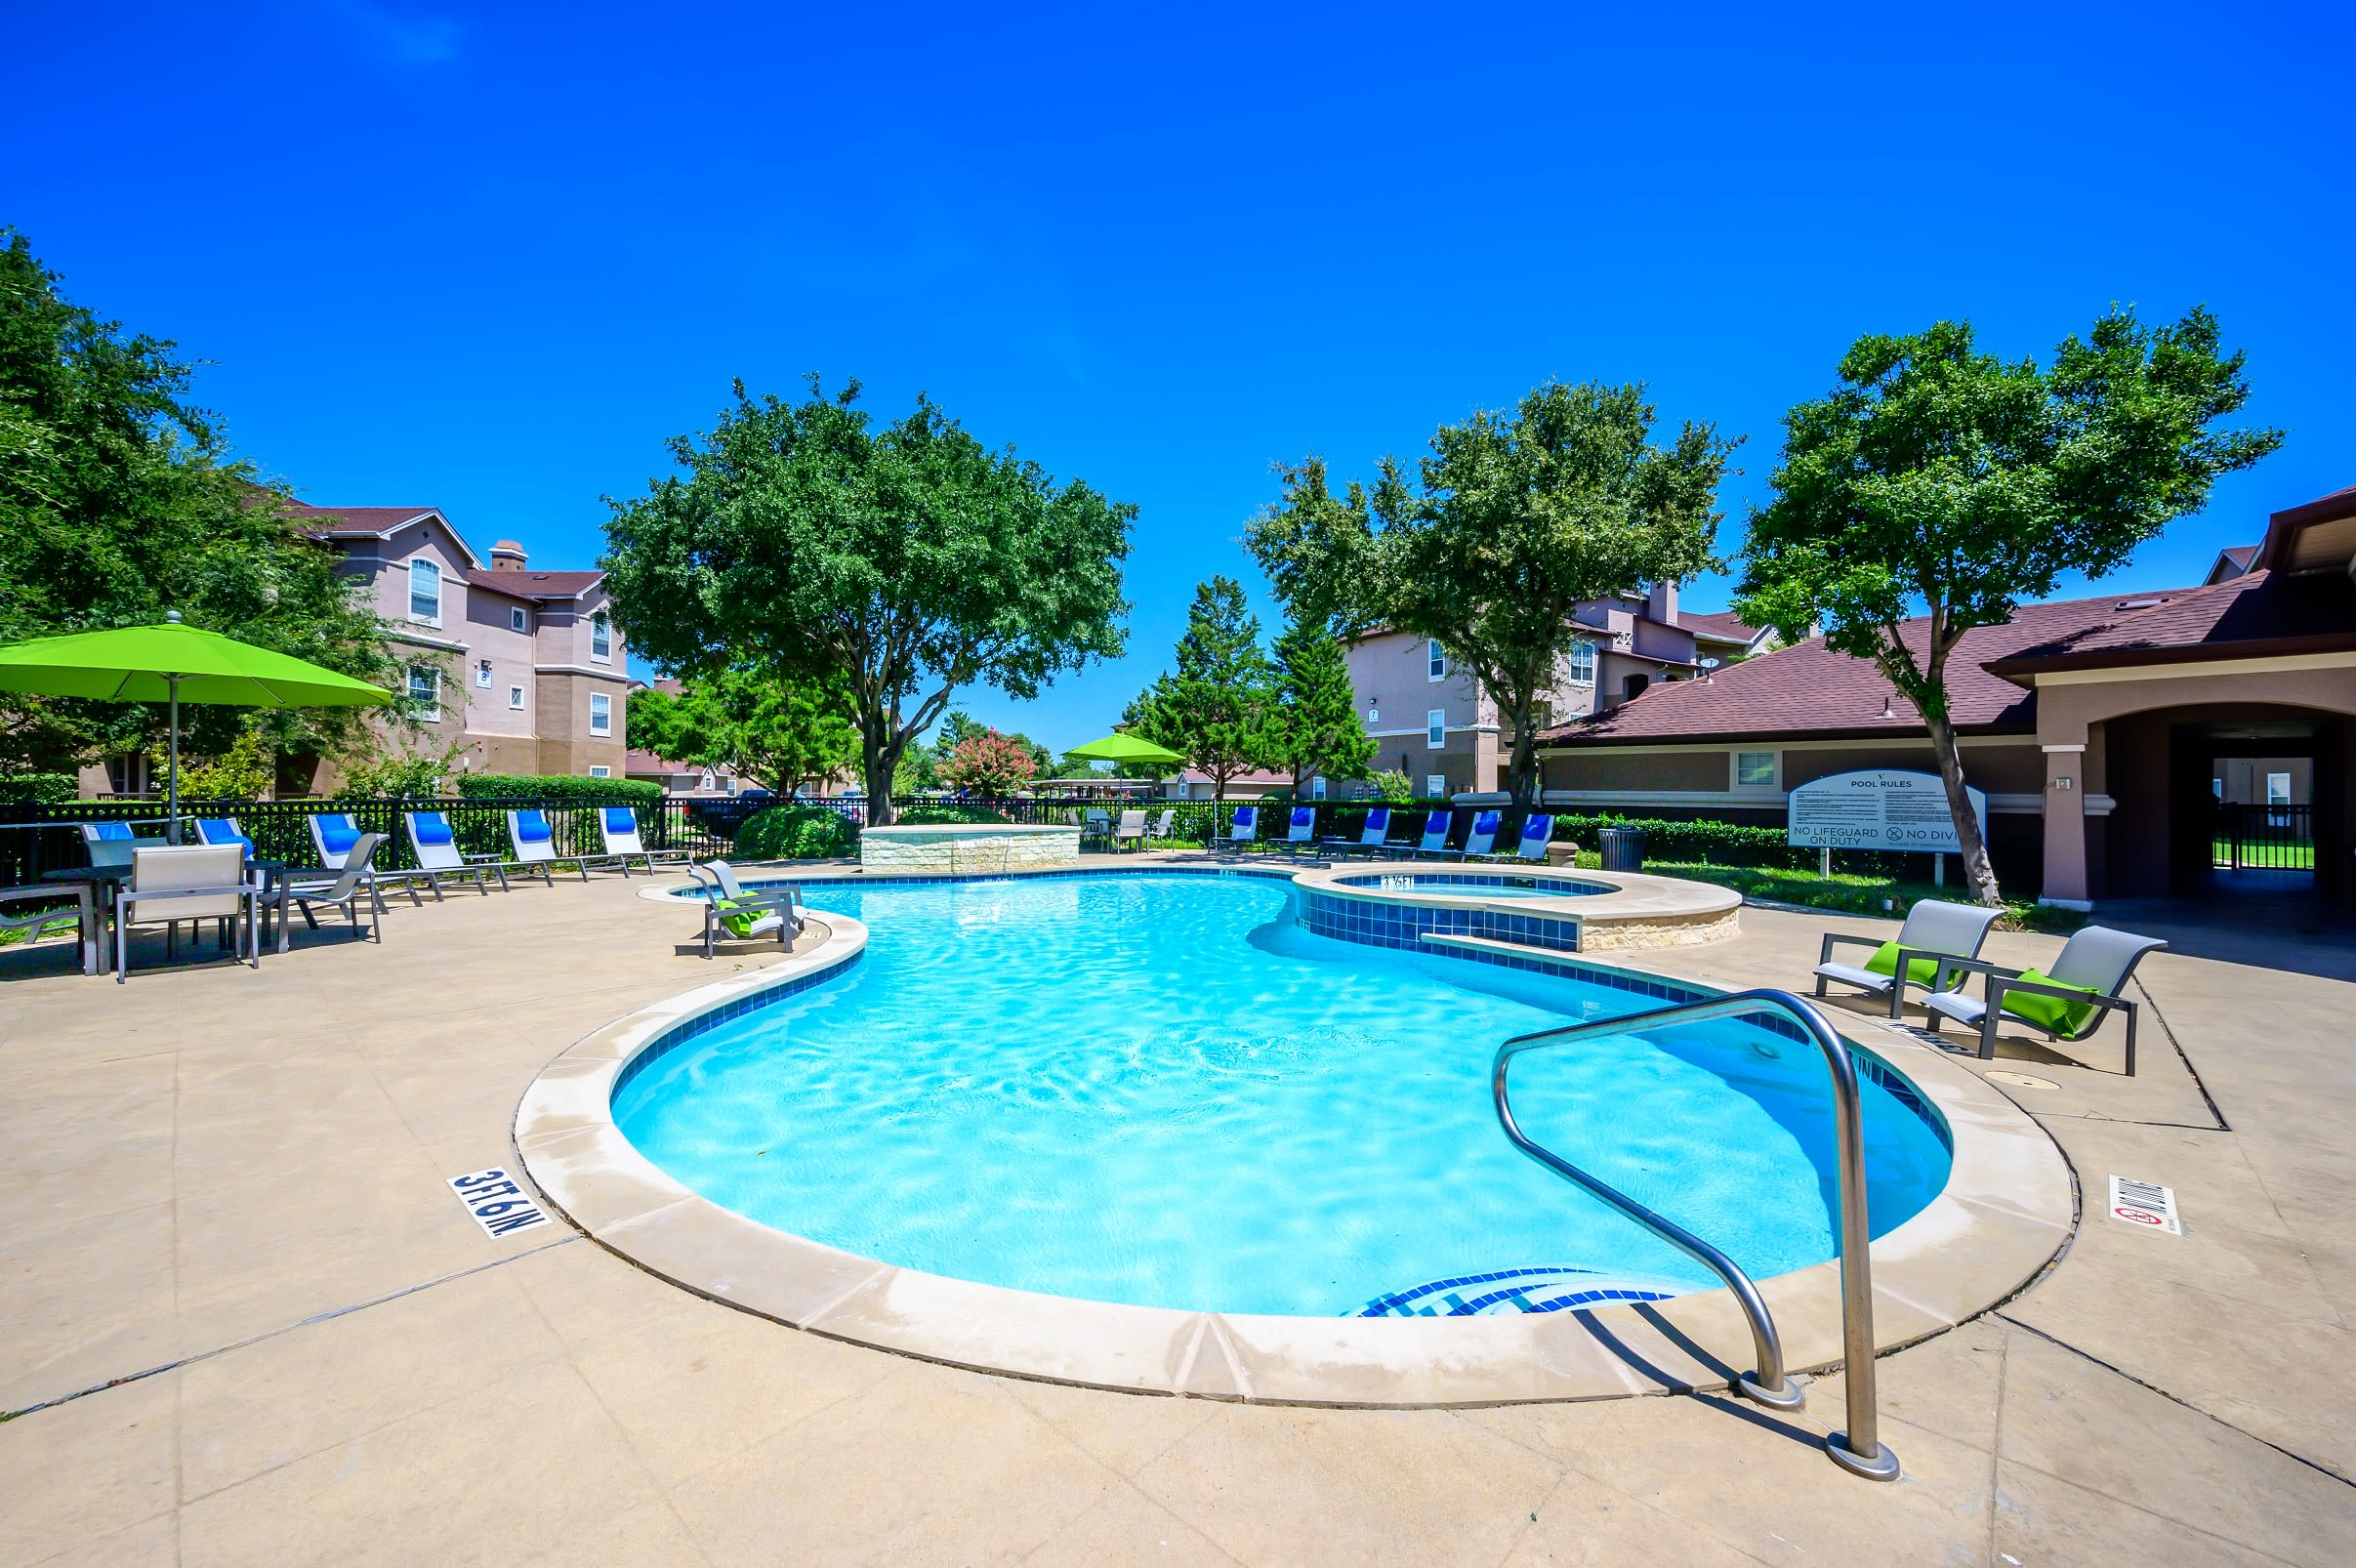 Large swimming pool with chaise lounge chairs on a beautiful sunny day at The View at Lakeside in Lewisville, Texas